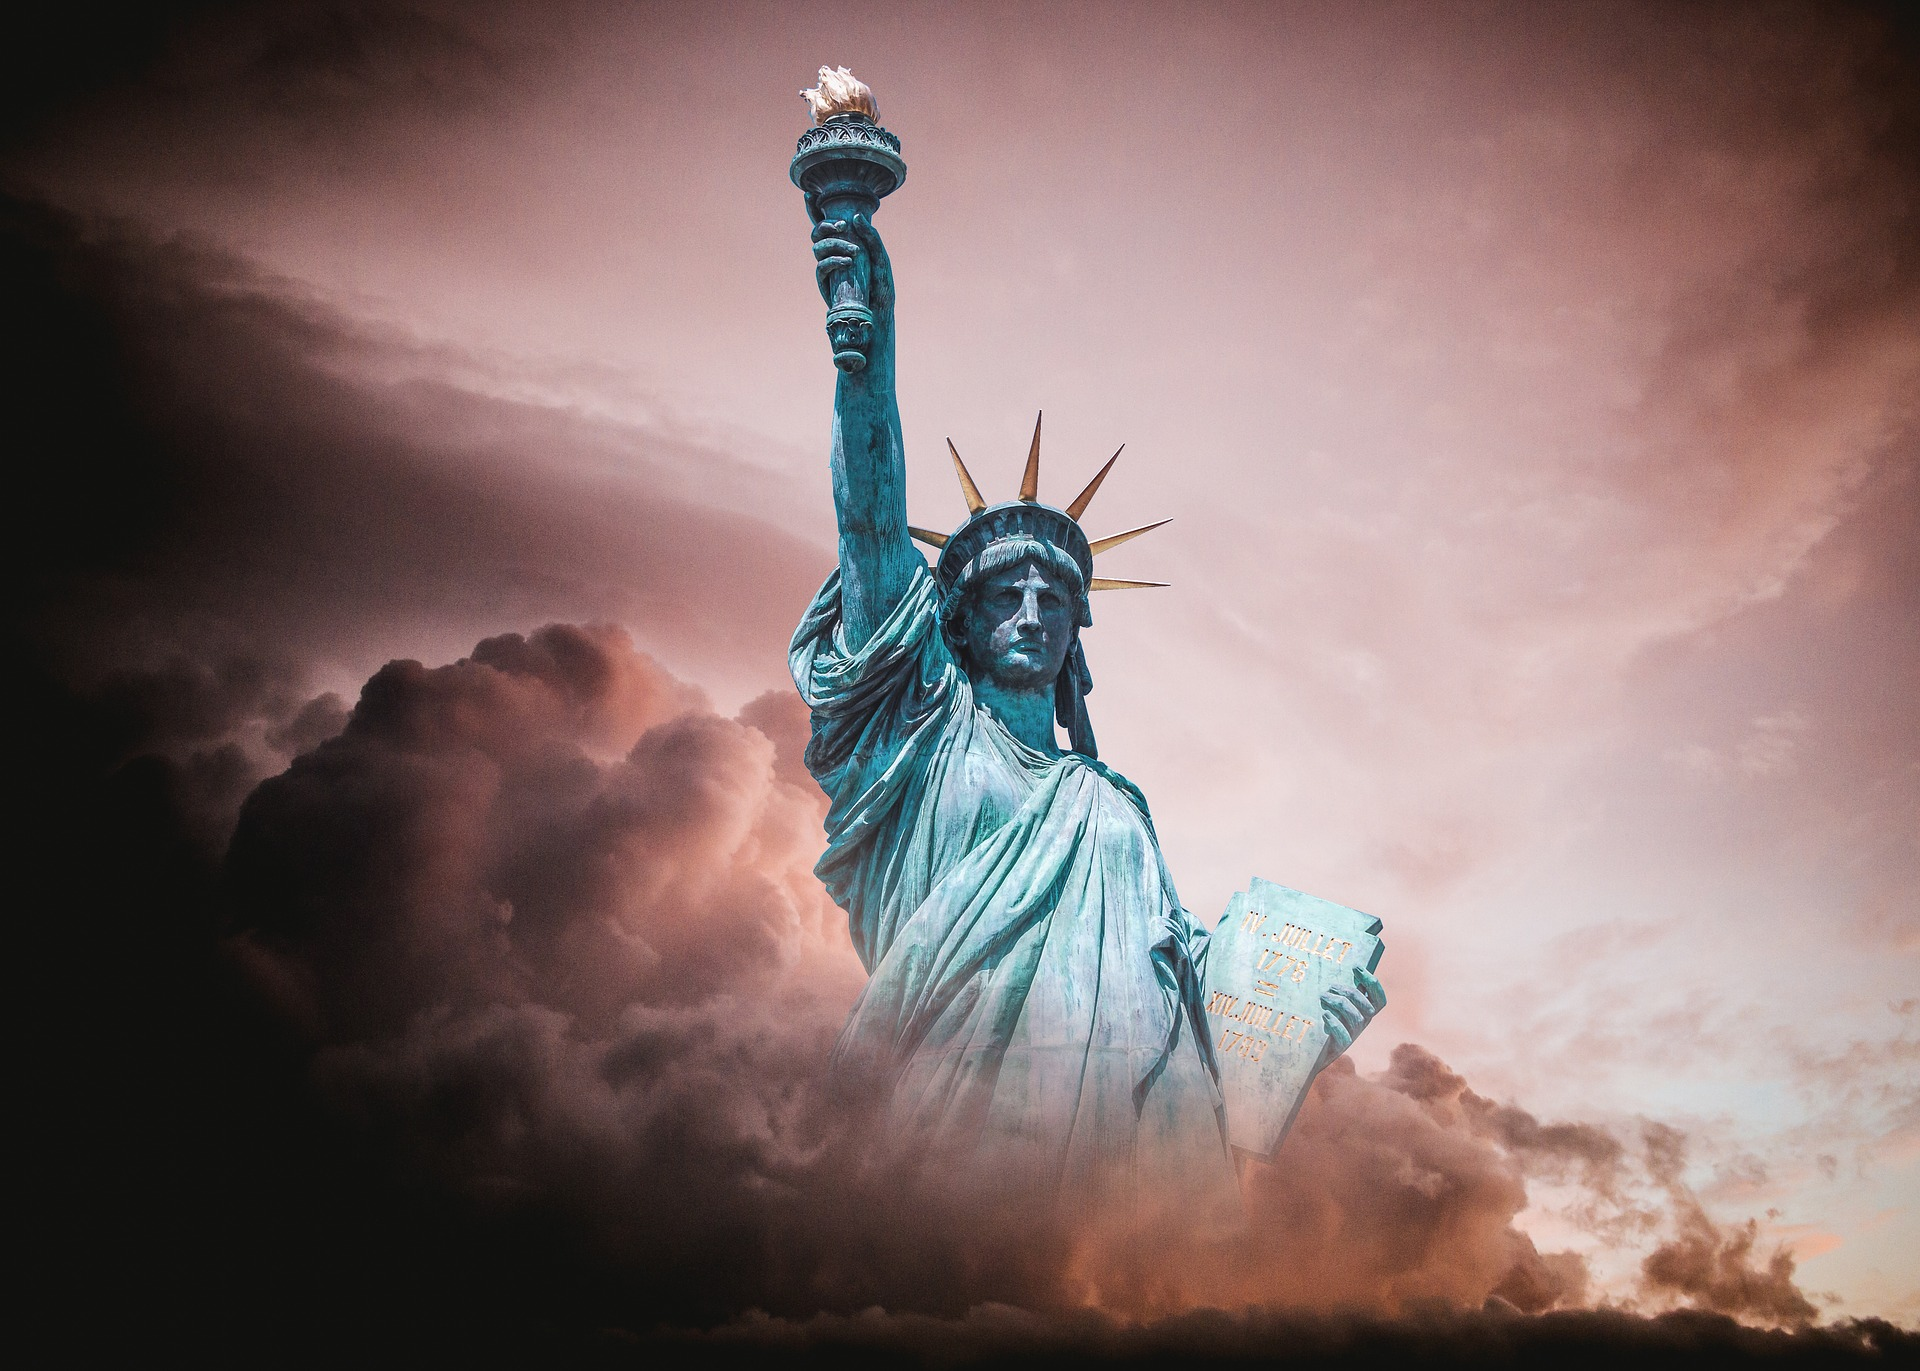 The Statue of Liberty, by ParentRap on Pixabay